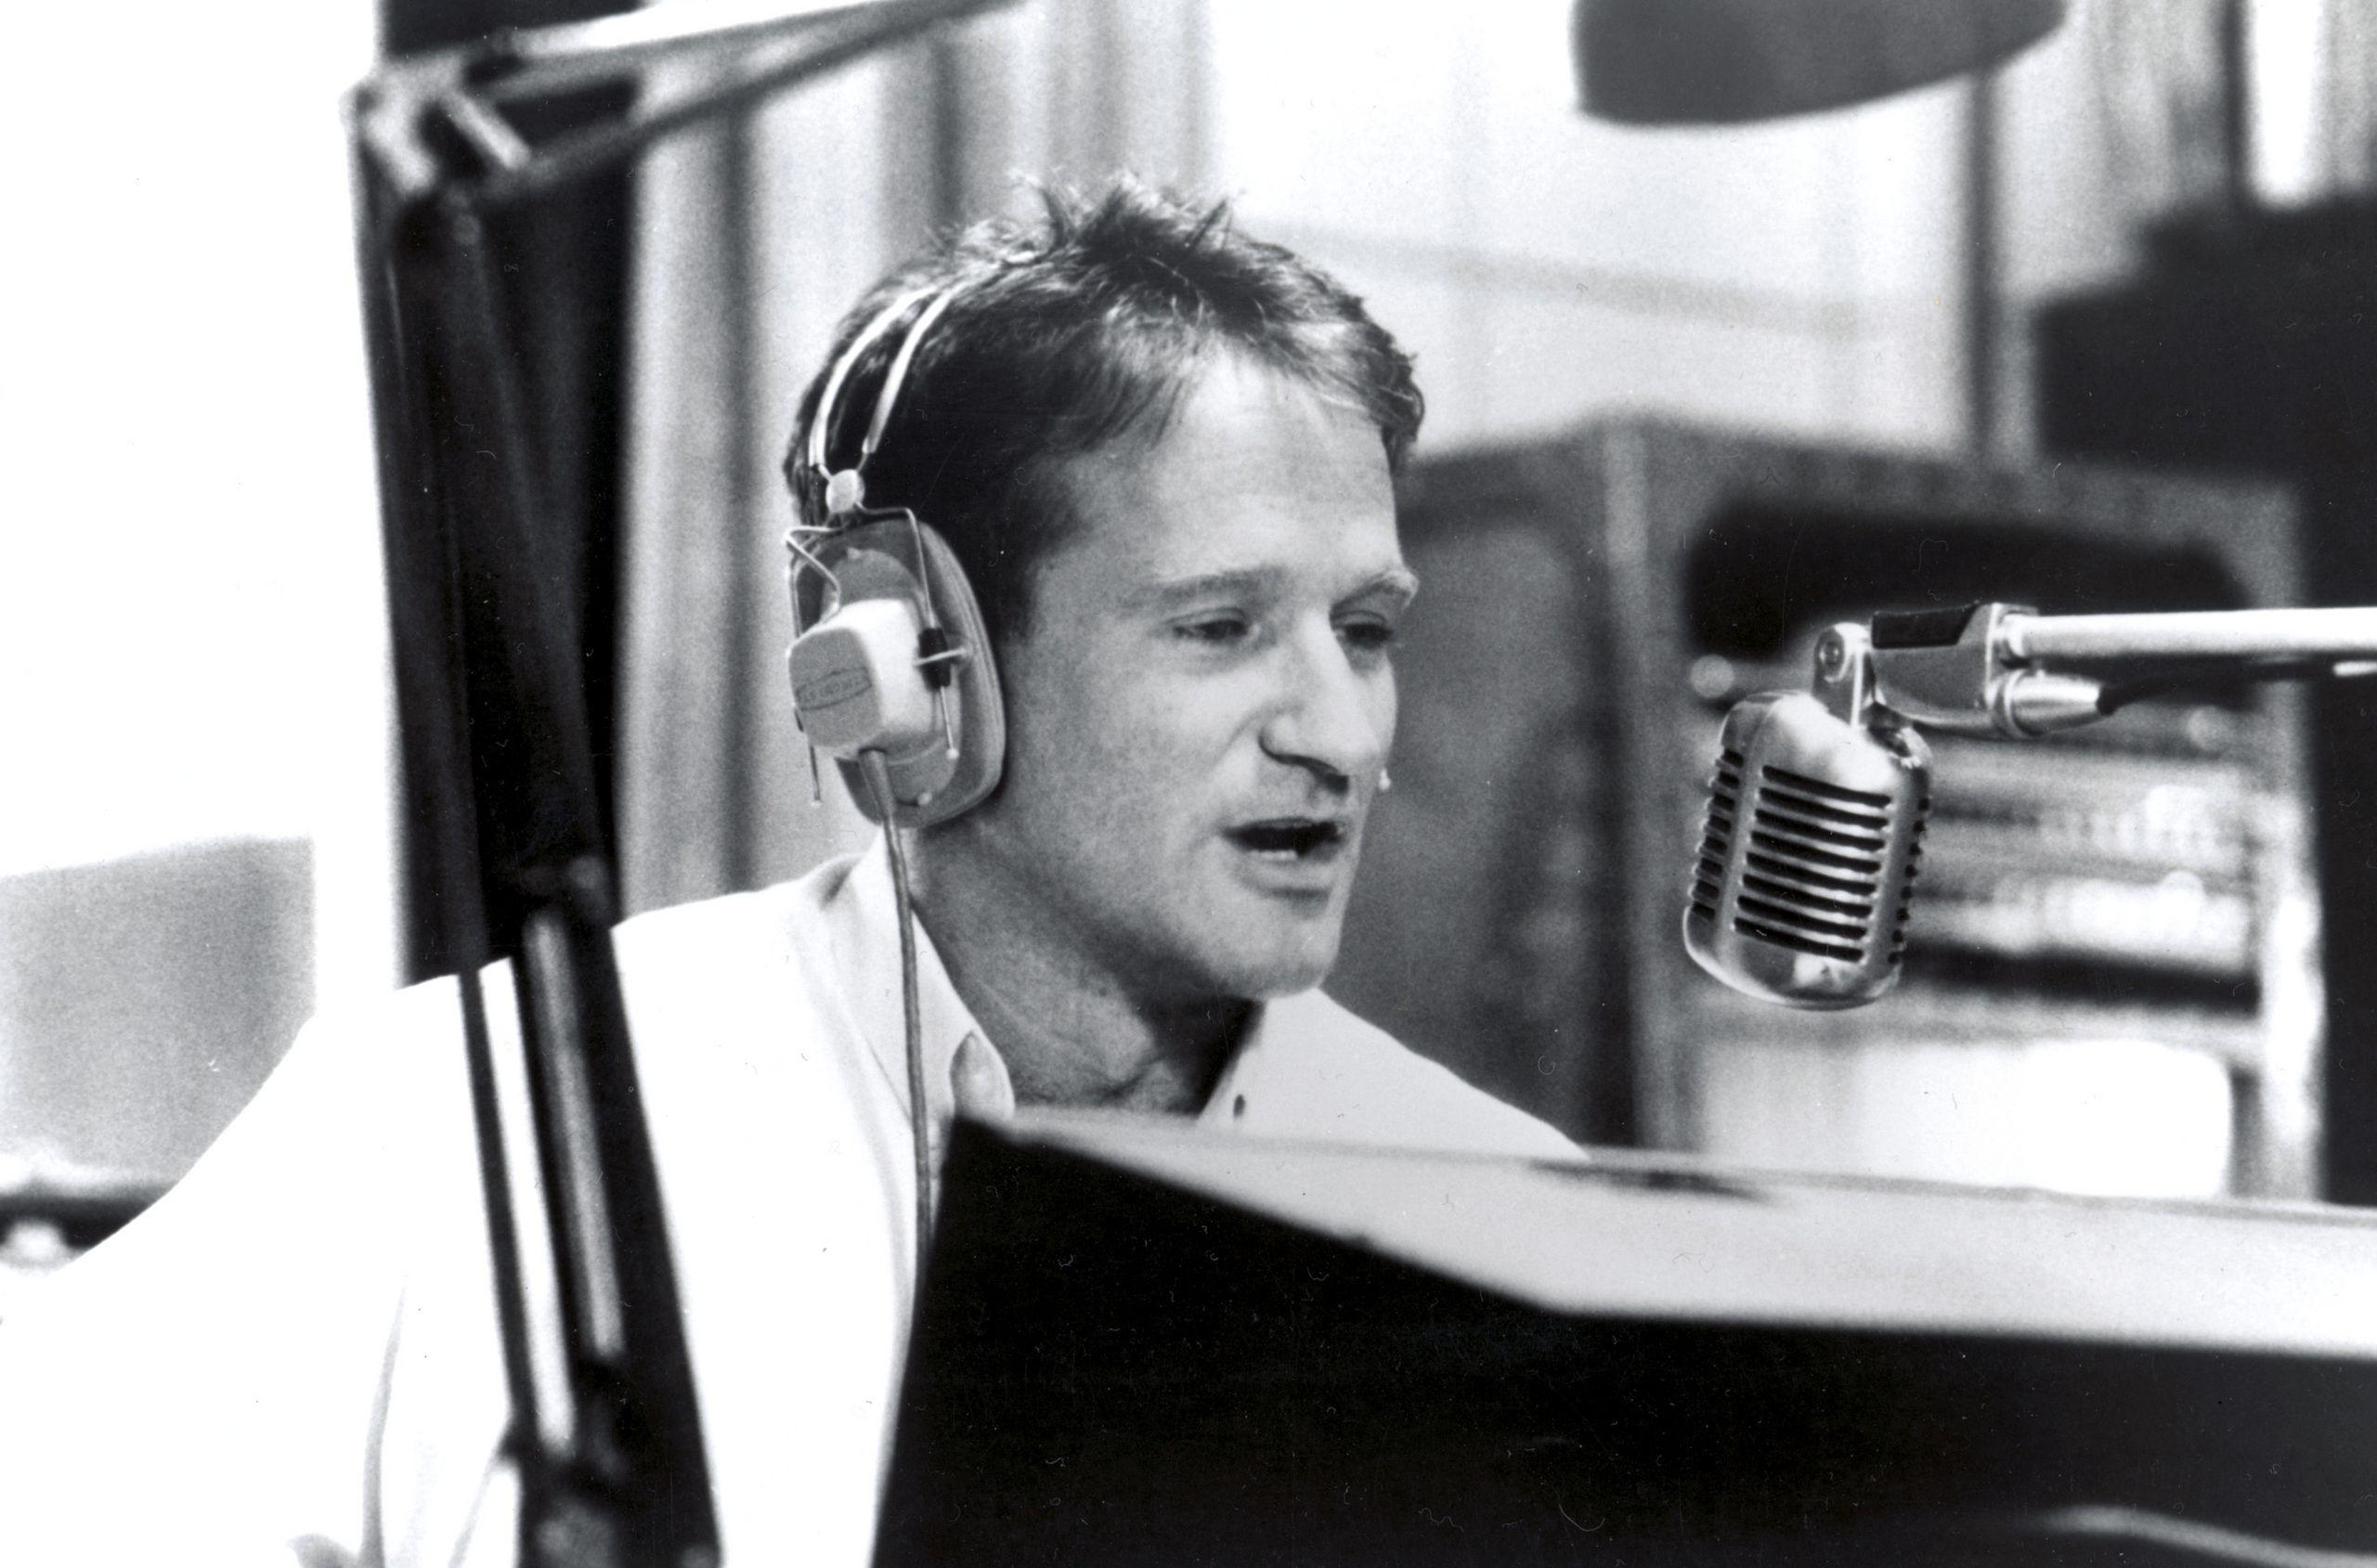 Actor Robin Williams in the studio wallpapers and image